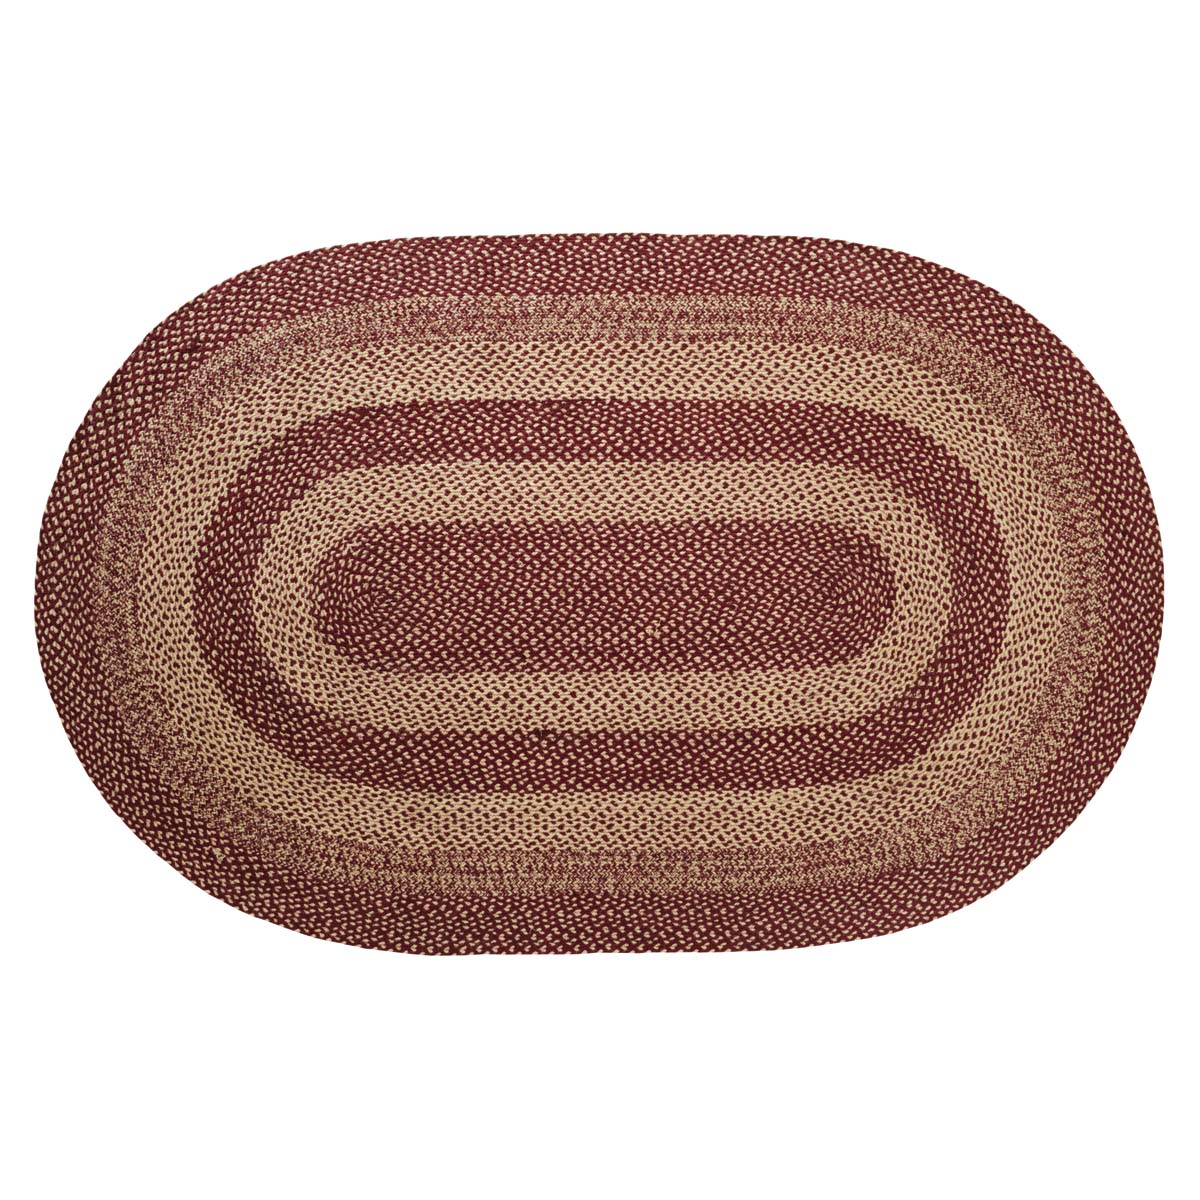 Burgundy Tan Jute Rug Oval 60x96 - Woodrol